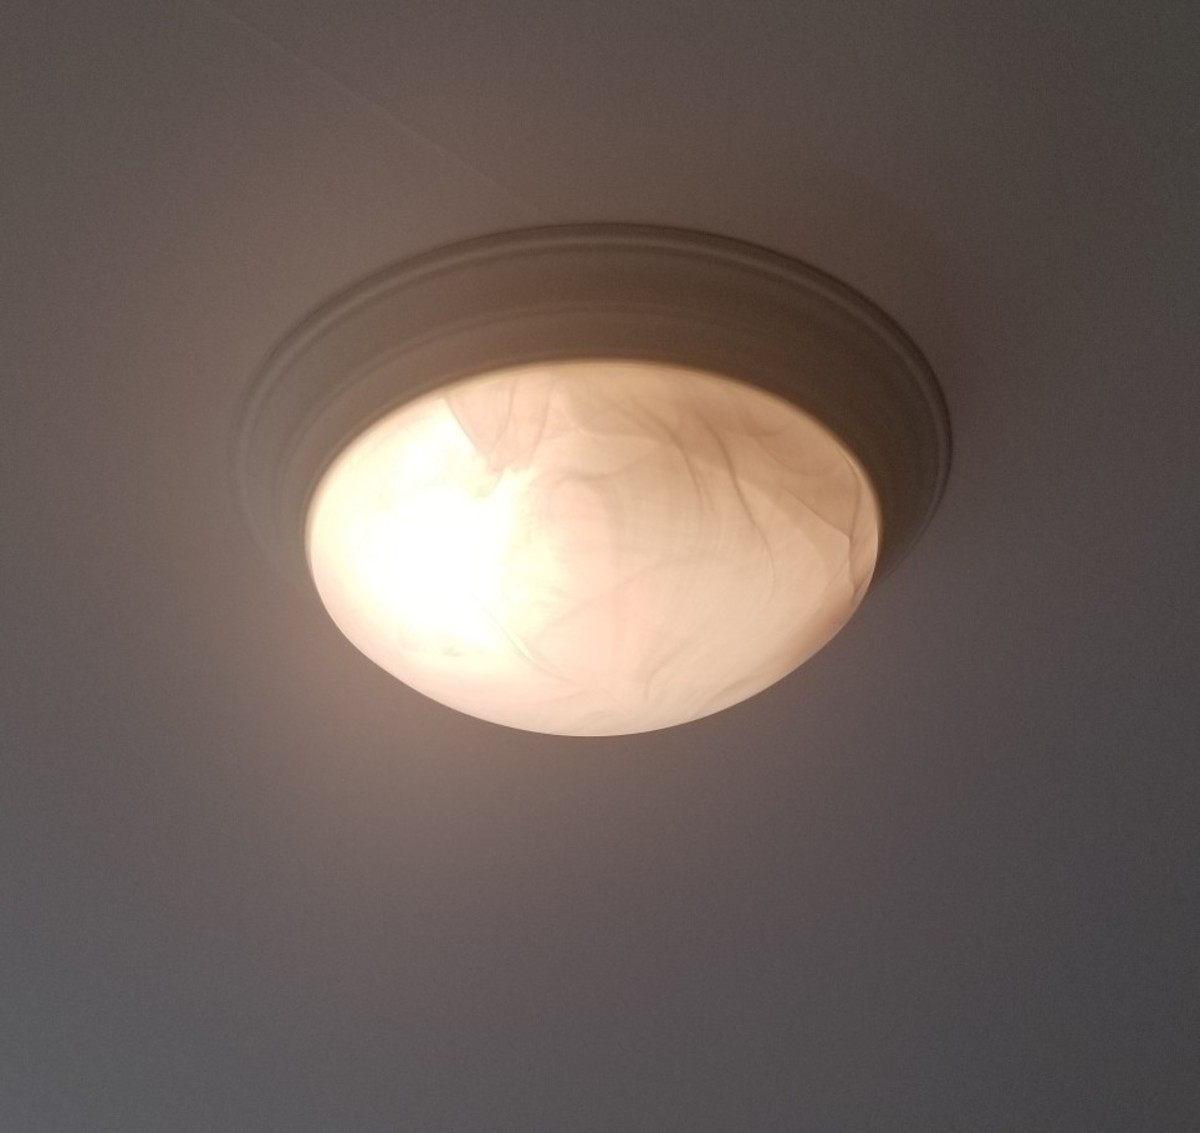 If your ceiling fixture does not provide a lot of light, buy a desk lamp.